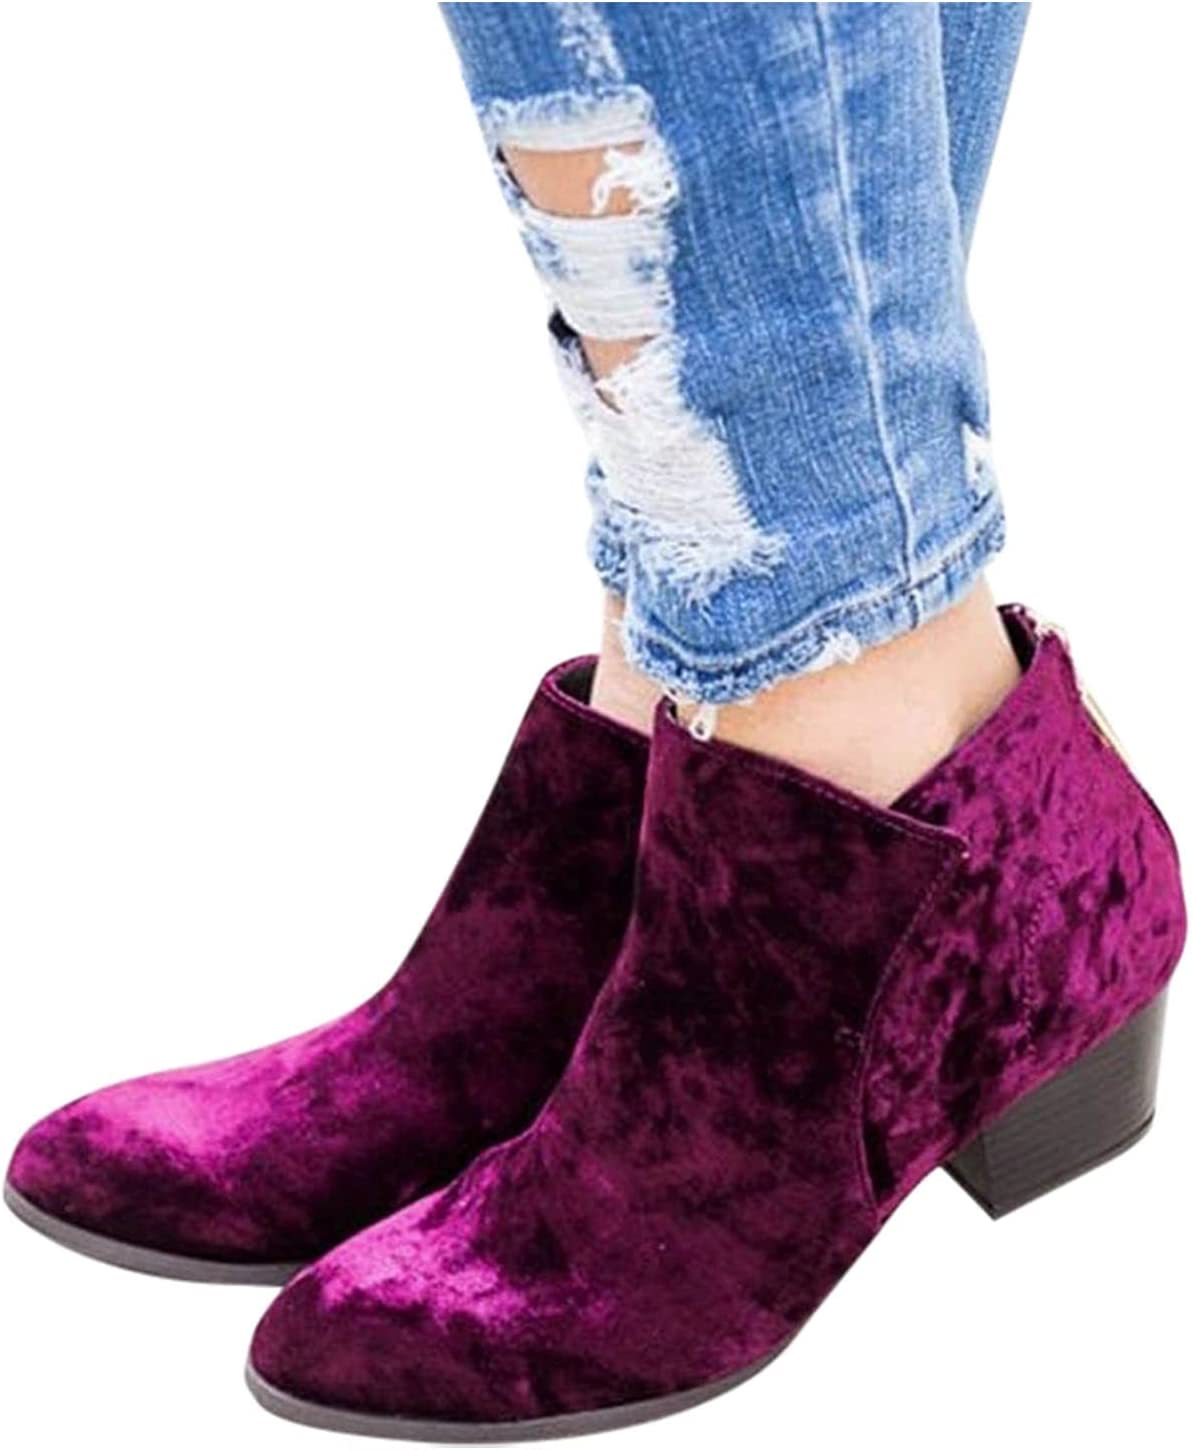 WomenAnkle Easy-to-use Boots SALENEW very popular! Slip on Chunky Heel Short B Chelsea